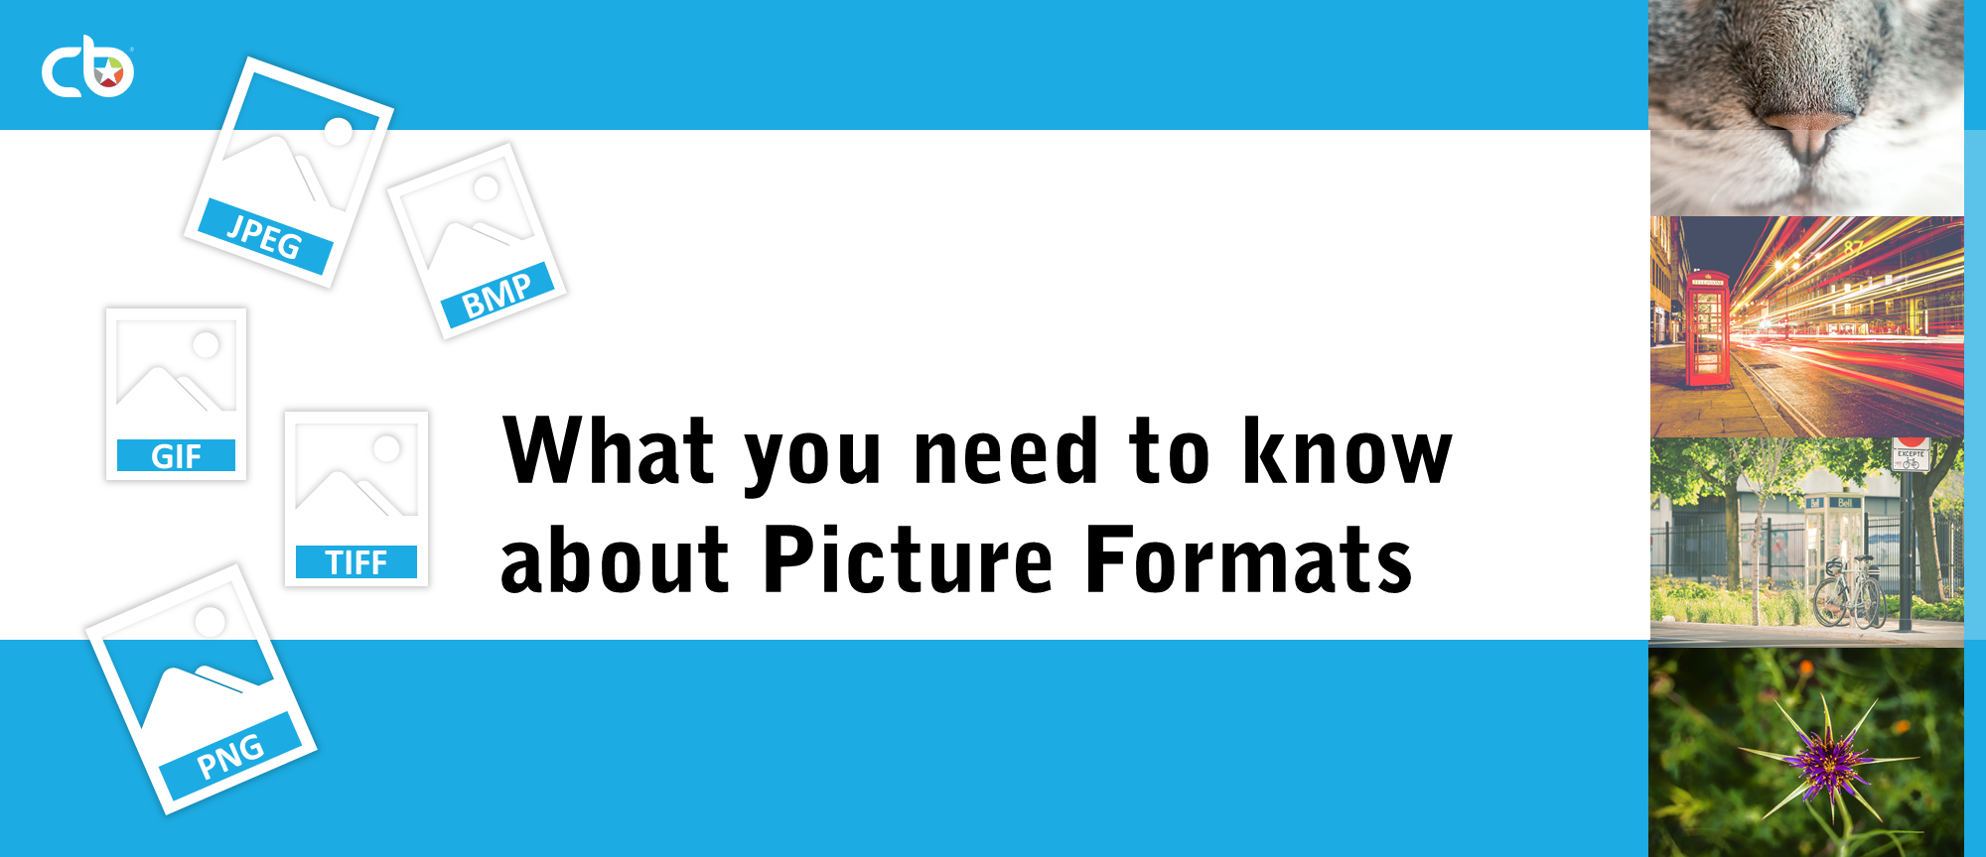 How to Pick the Right Image Format for Your Presentations